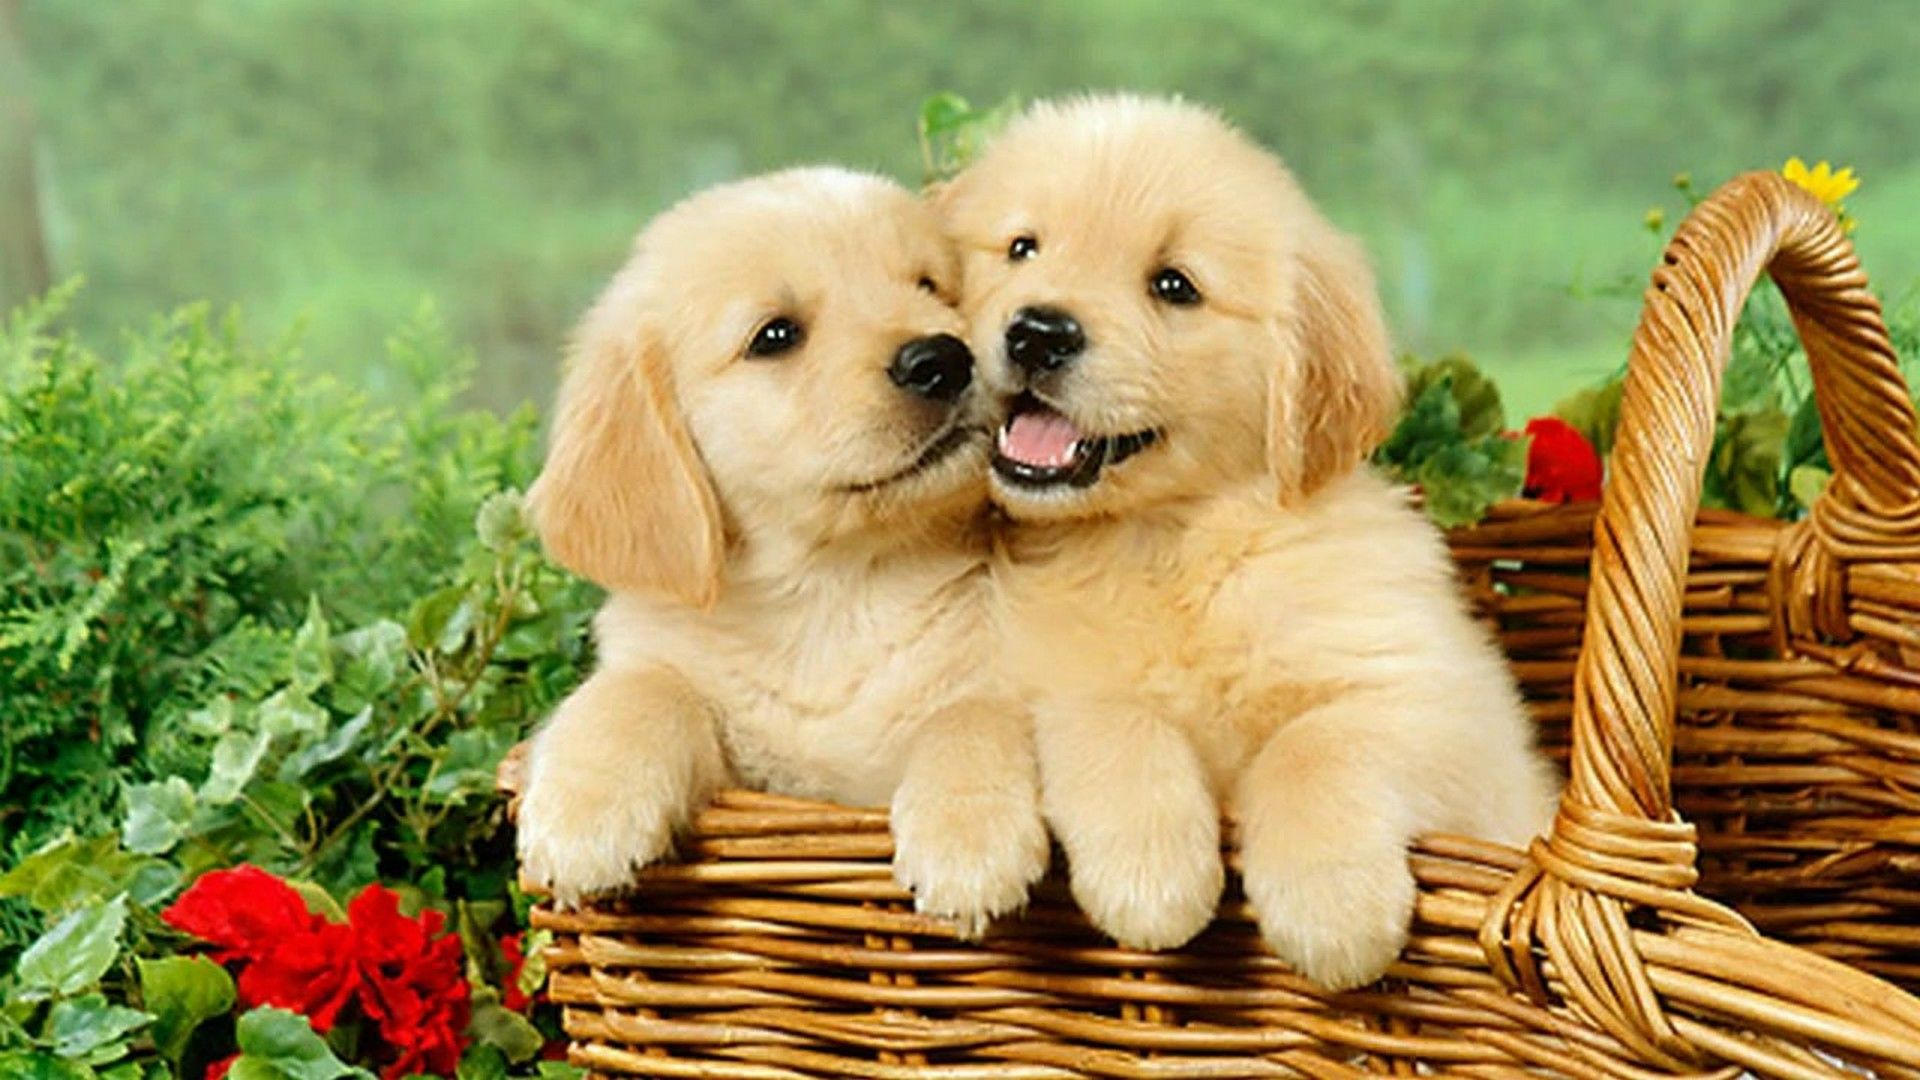 Cute Puppies Desktop Backgrounds Hd Really Cute Puppies Puppies